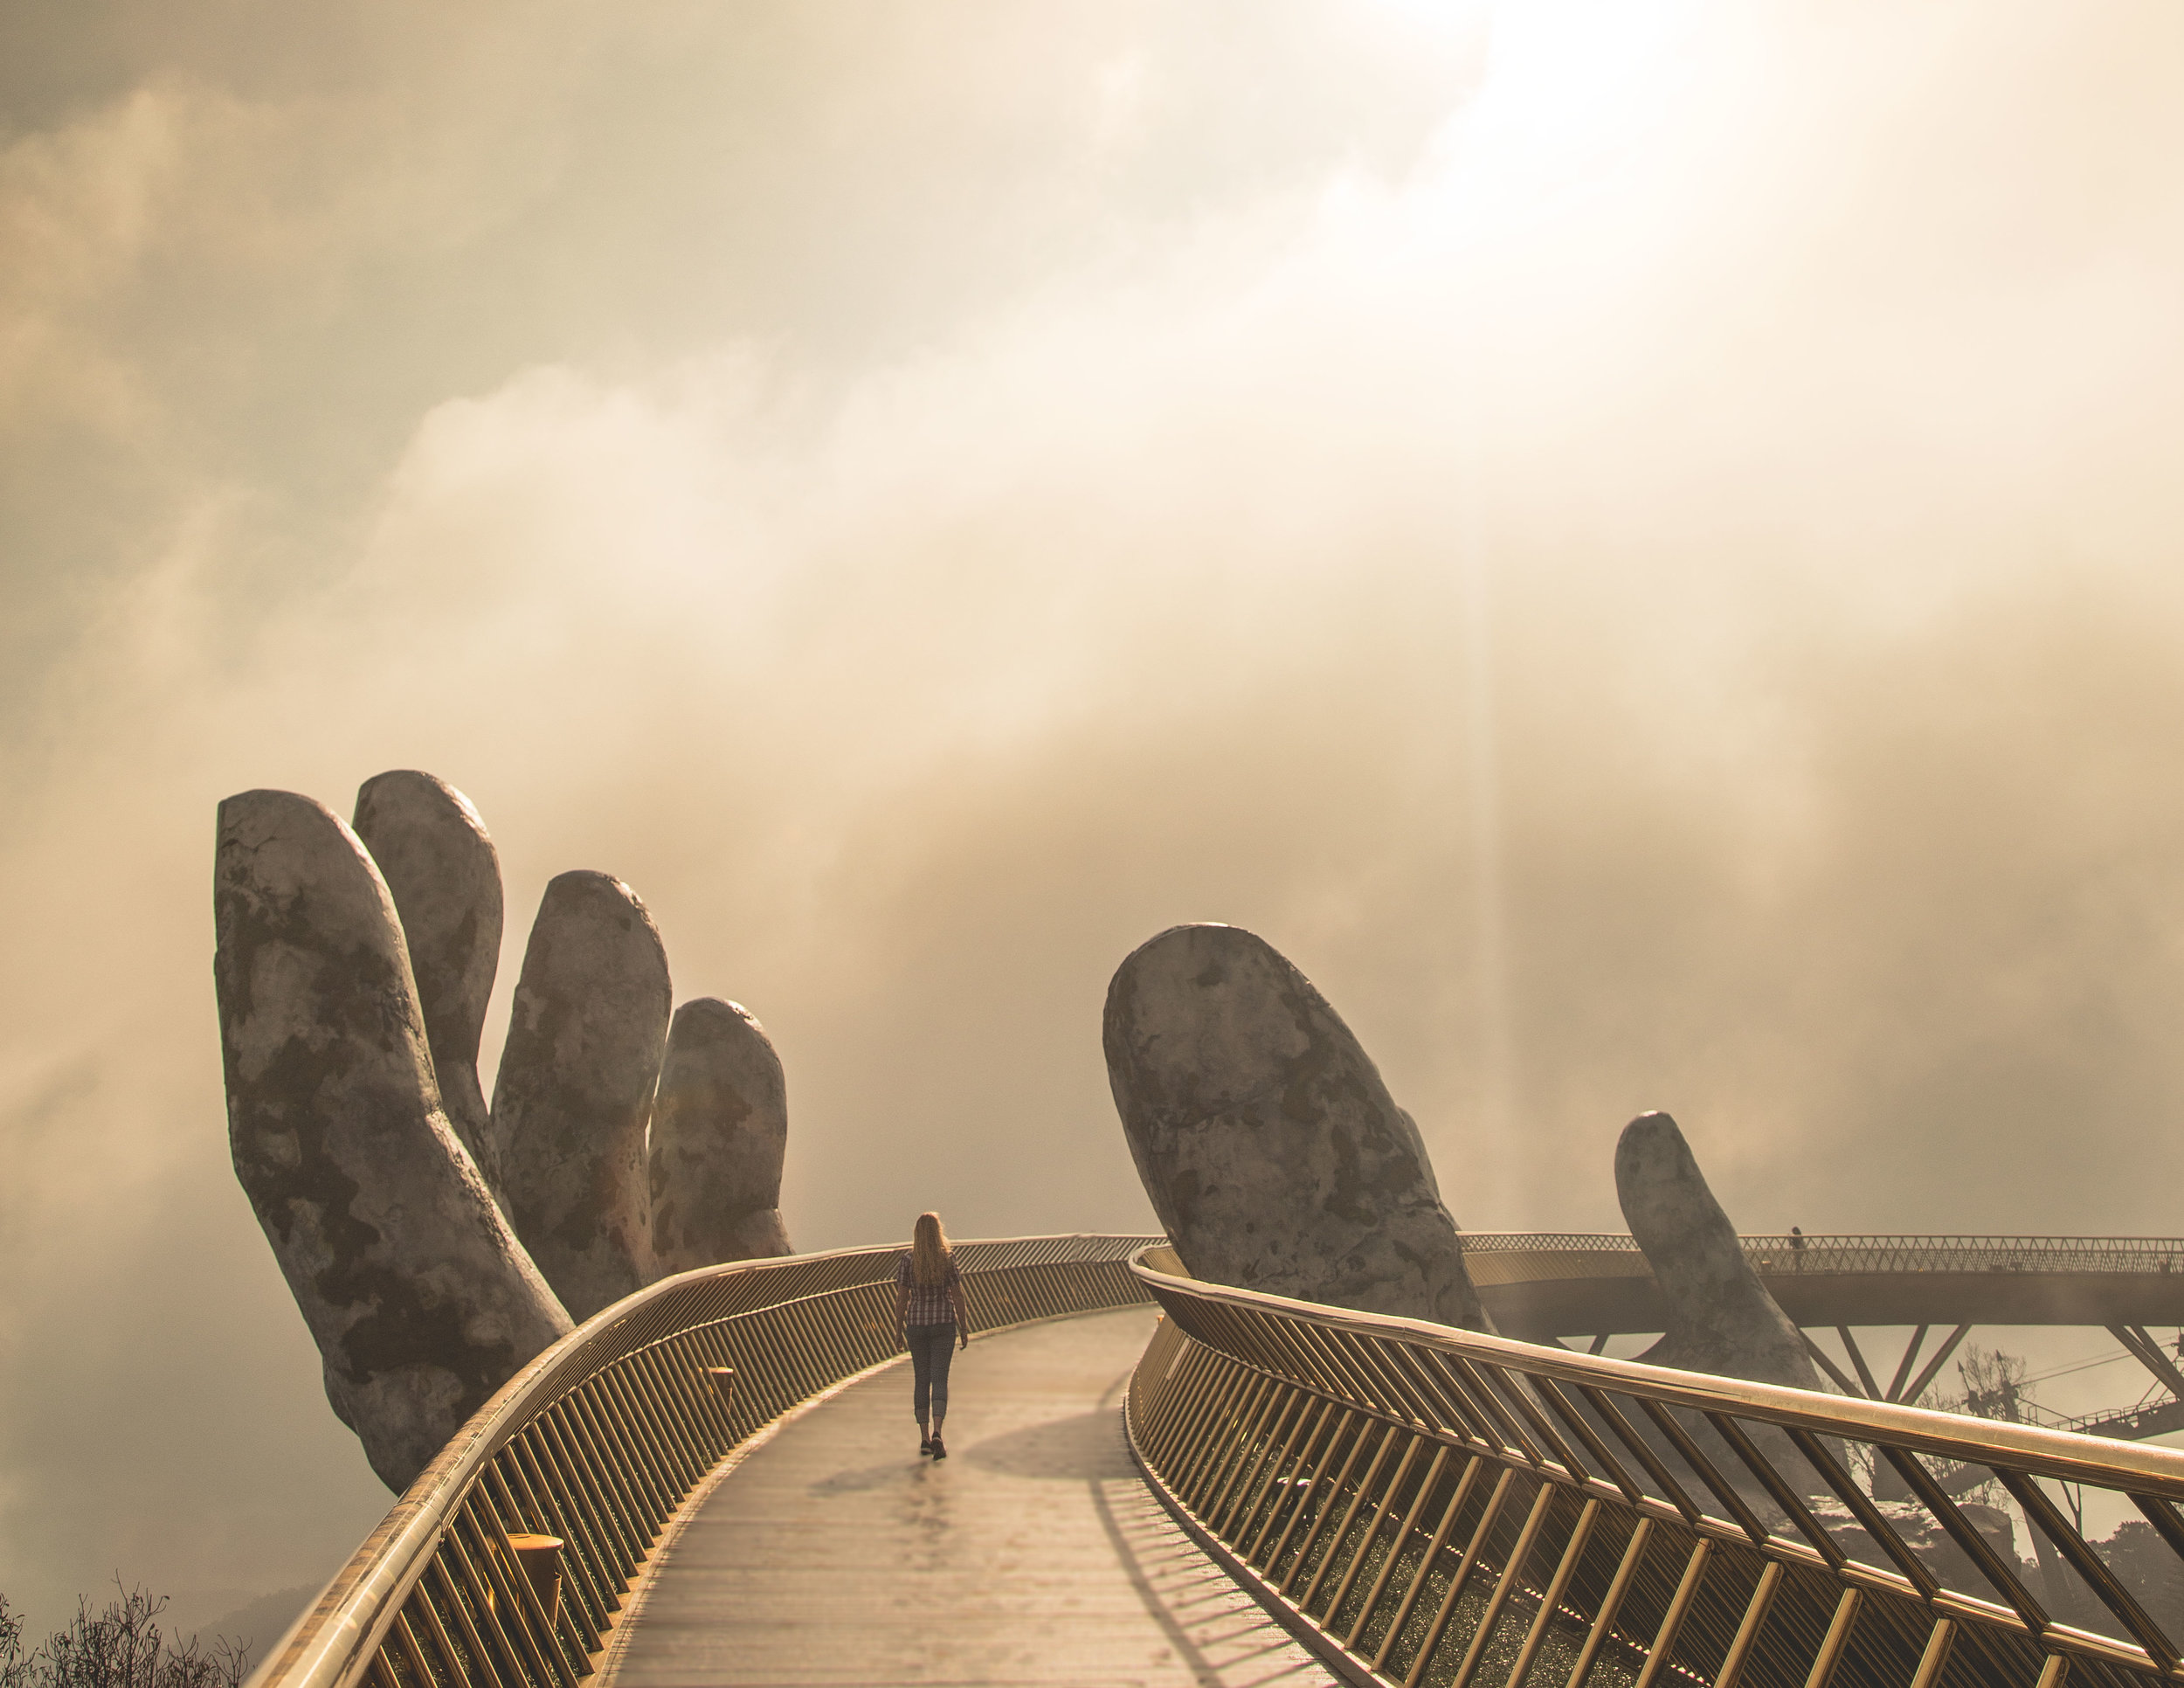 Golden Hand Bridge in Da Nang, Ba Na Hills Vietnam